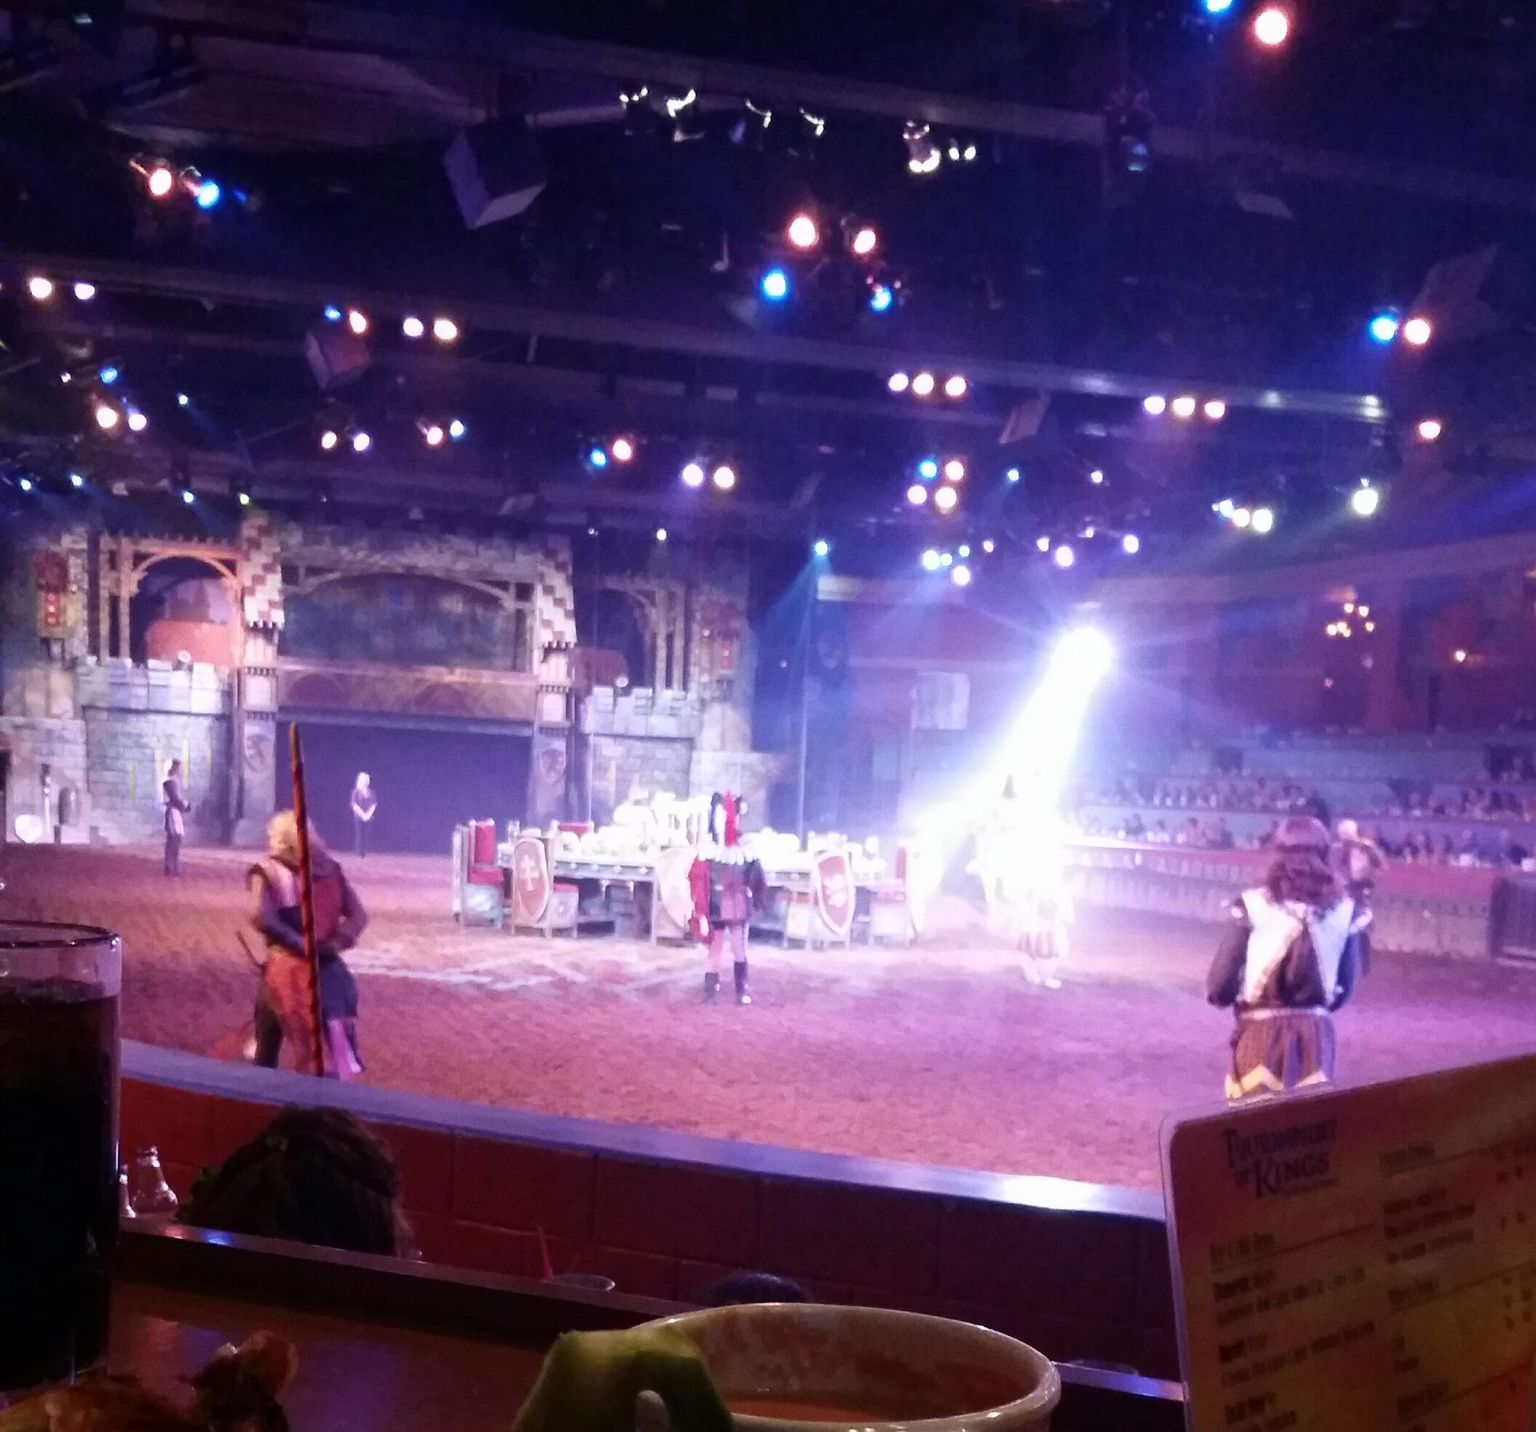 Tournament of Kings Dinner and Show at the Excalibur Hotel and Casino